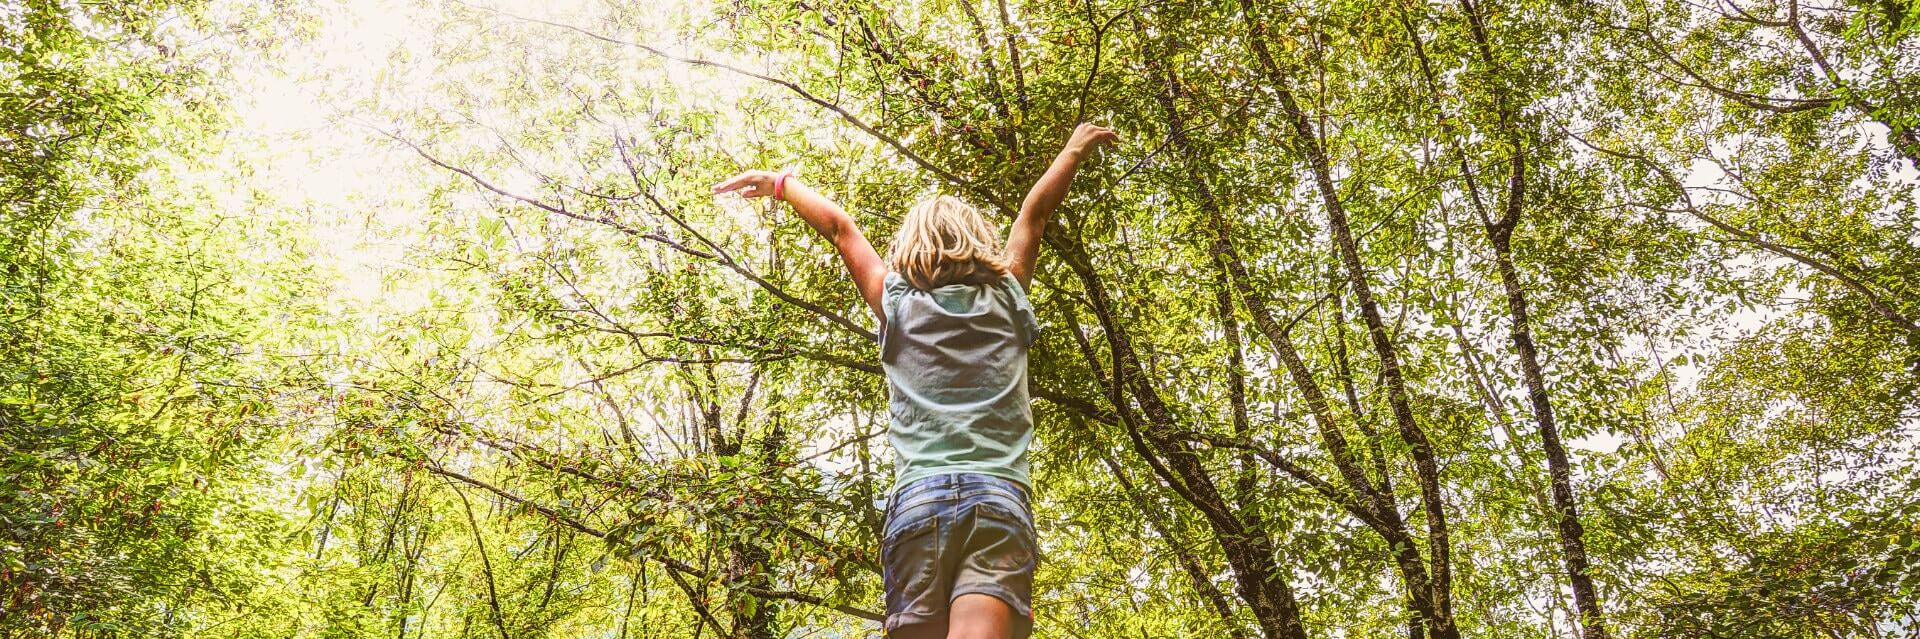 Young child in tree area with arms raised